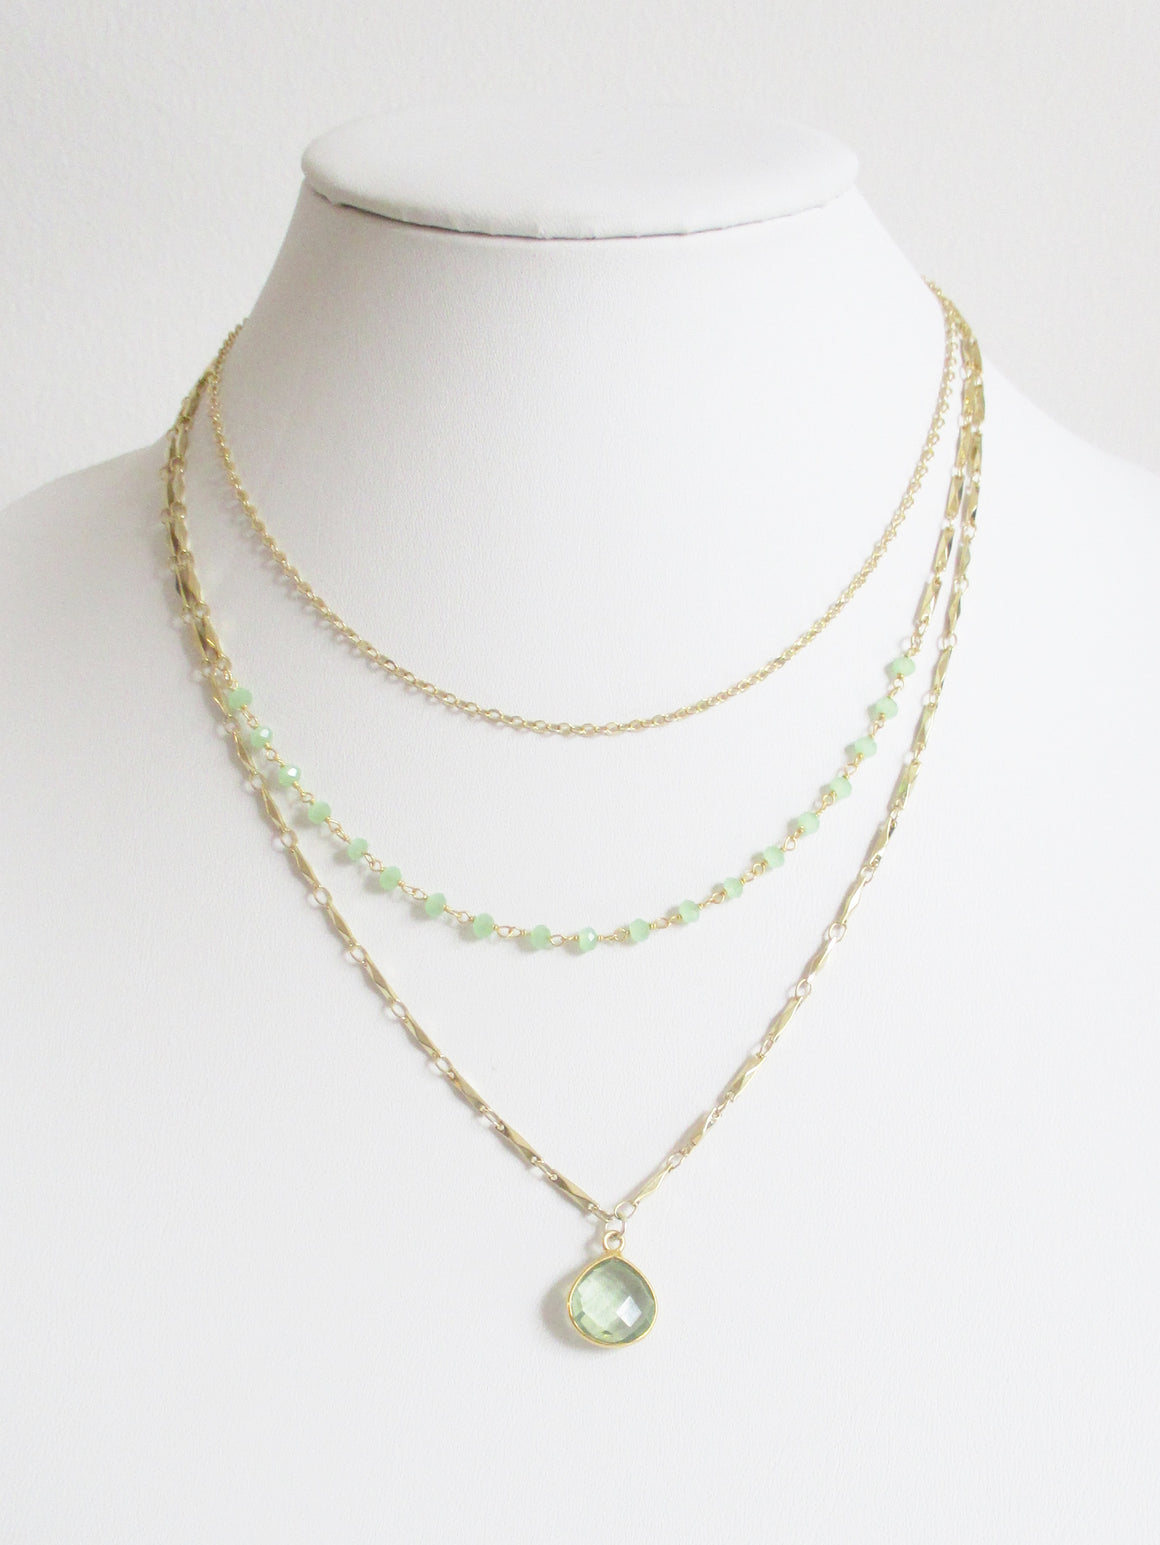 METALLIC OCEAN THREE TIER GREEN CHALCEDONY AND GREEN AMEYTHEST GEMSTONE NECKLACE